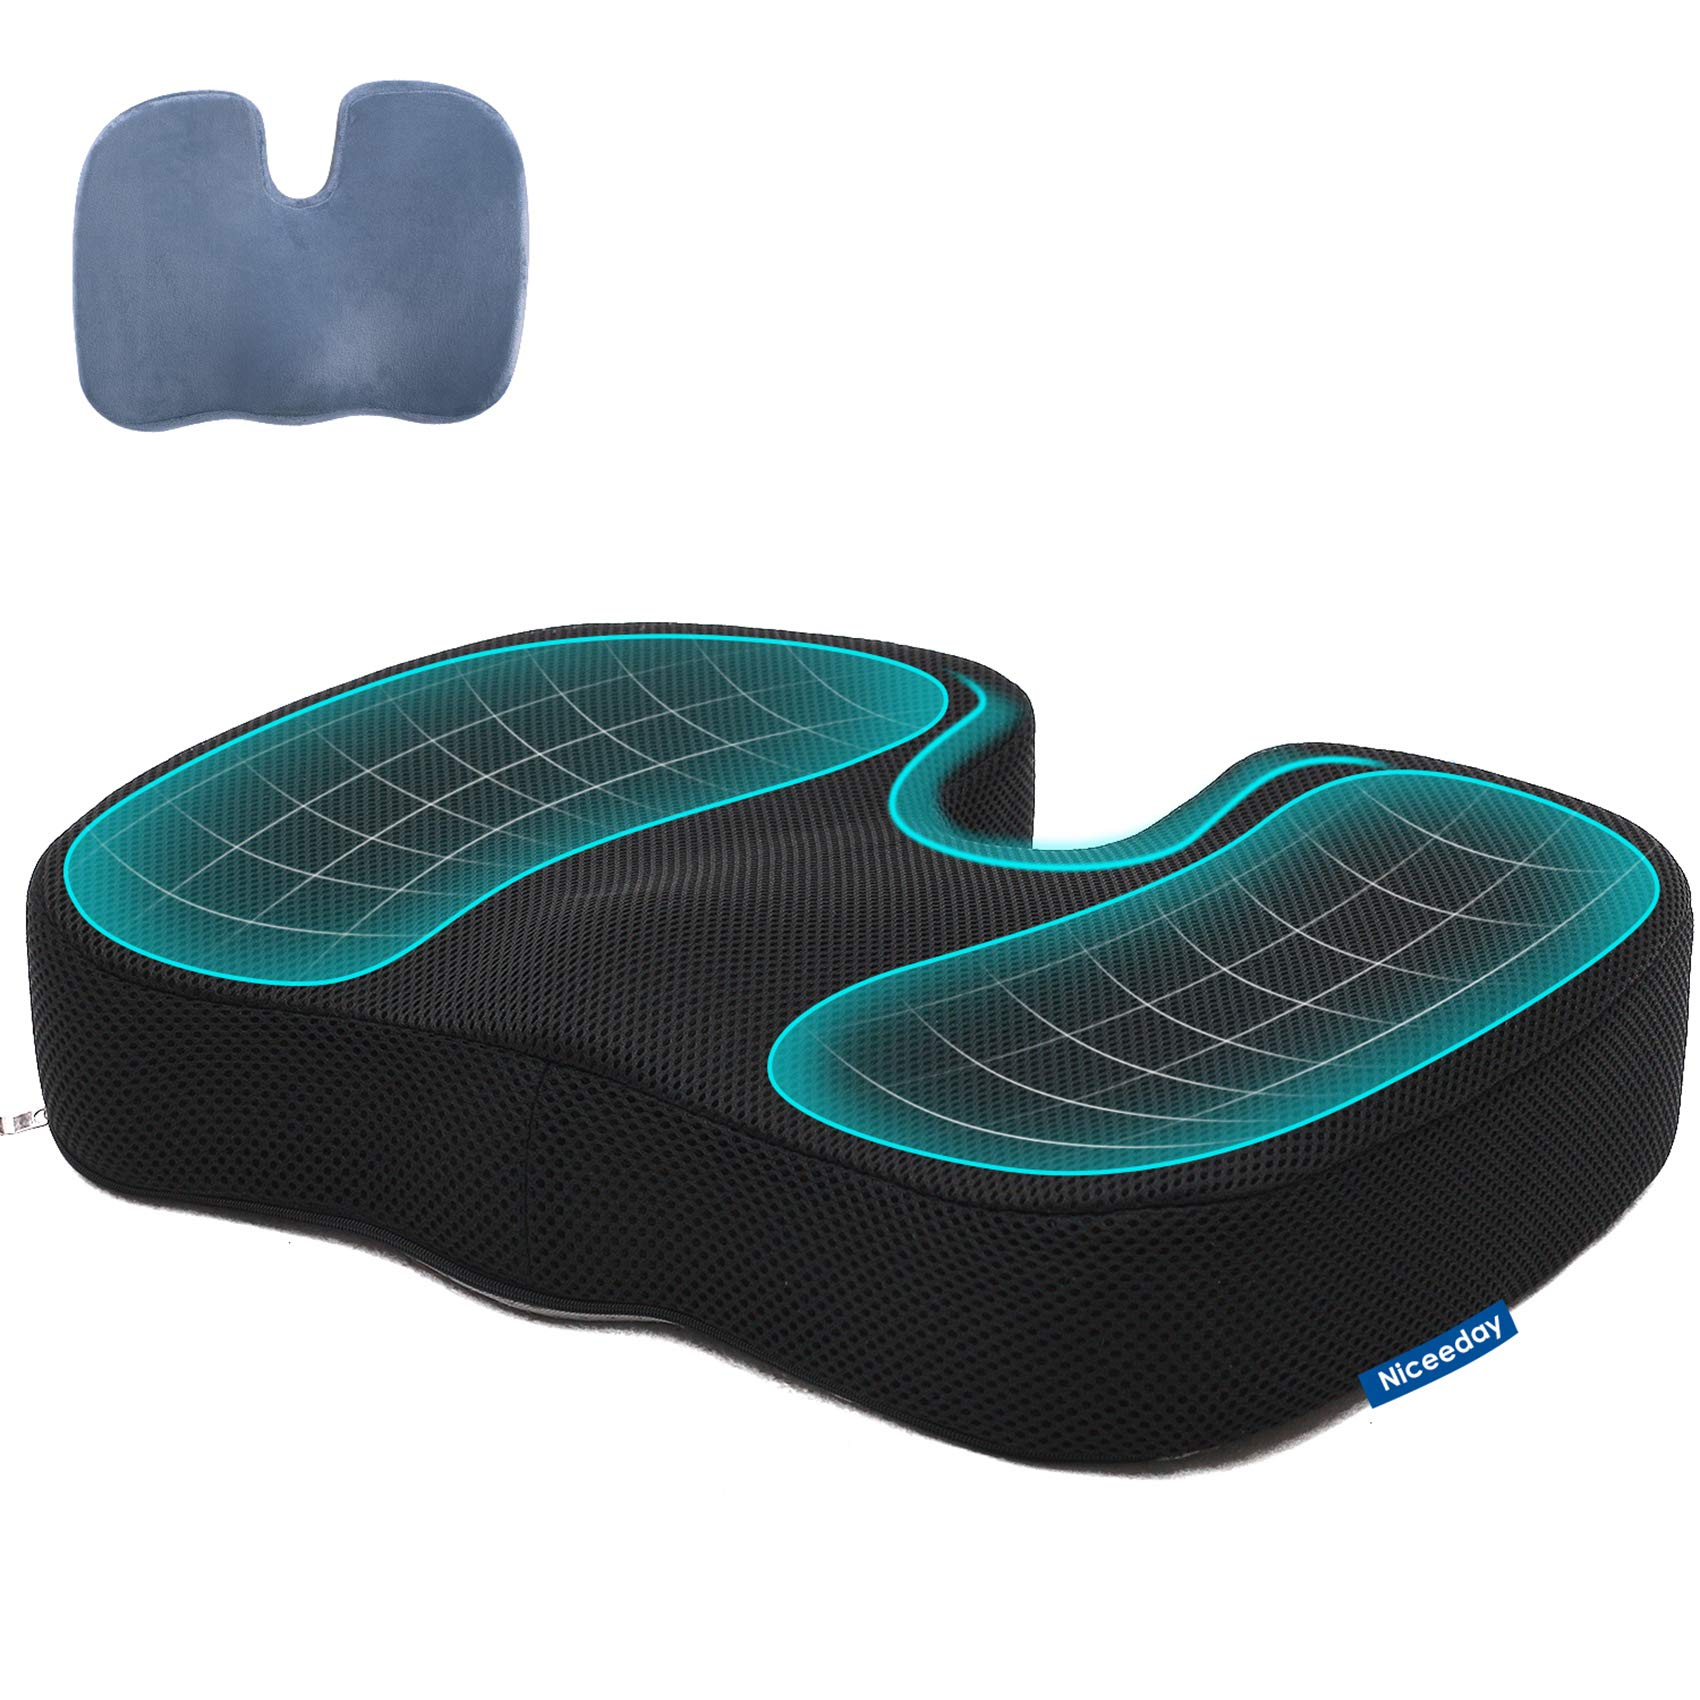 Car Seat Cushion for Office Chair with 2 Covers, Tailbone Pain Relief Cushion, Memory Foam Sciatica Pillow for Sitting - Coccyx Cushion for Car, Wheelchair, Computer, Desk Chair, Truck- Orthopedic Pad